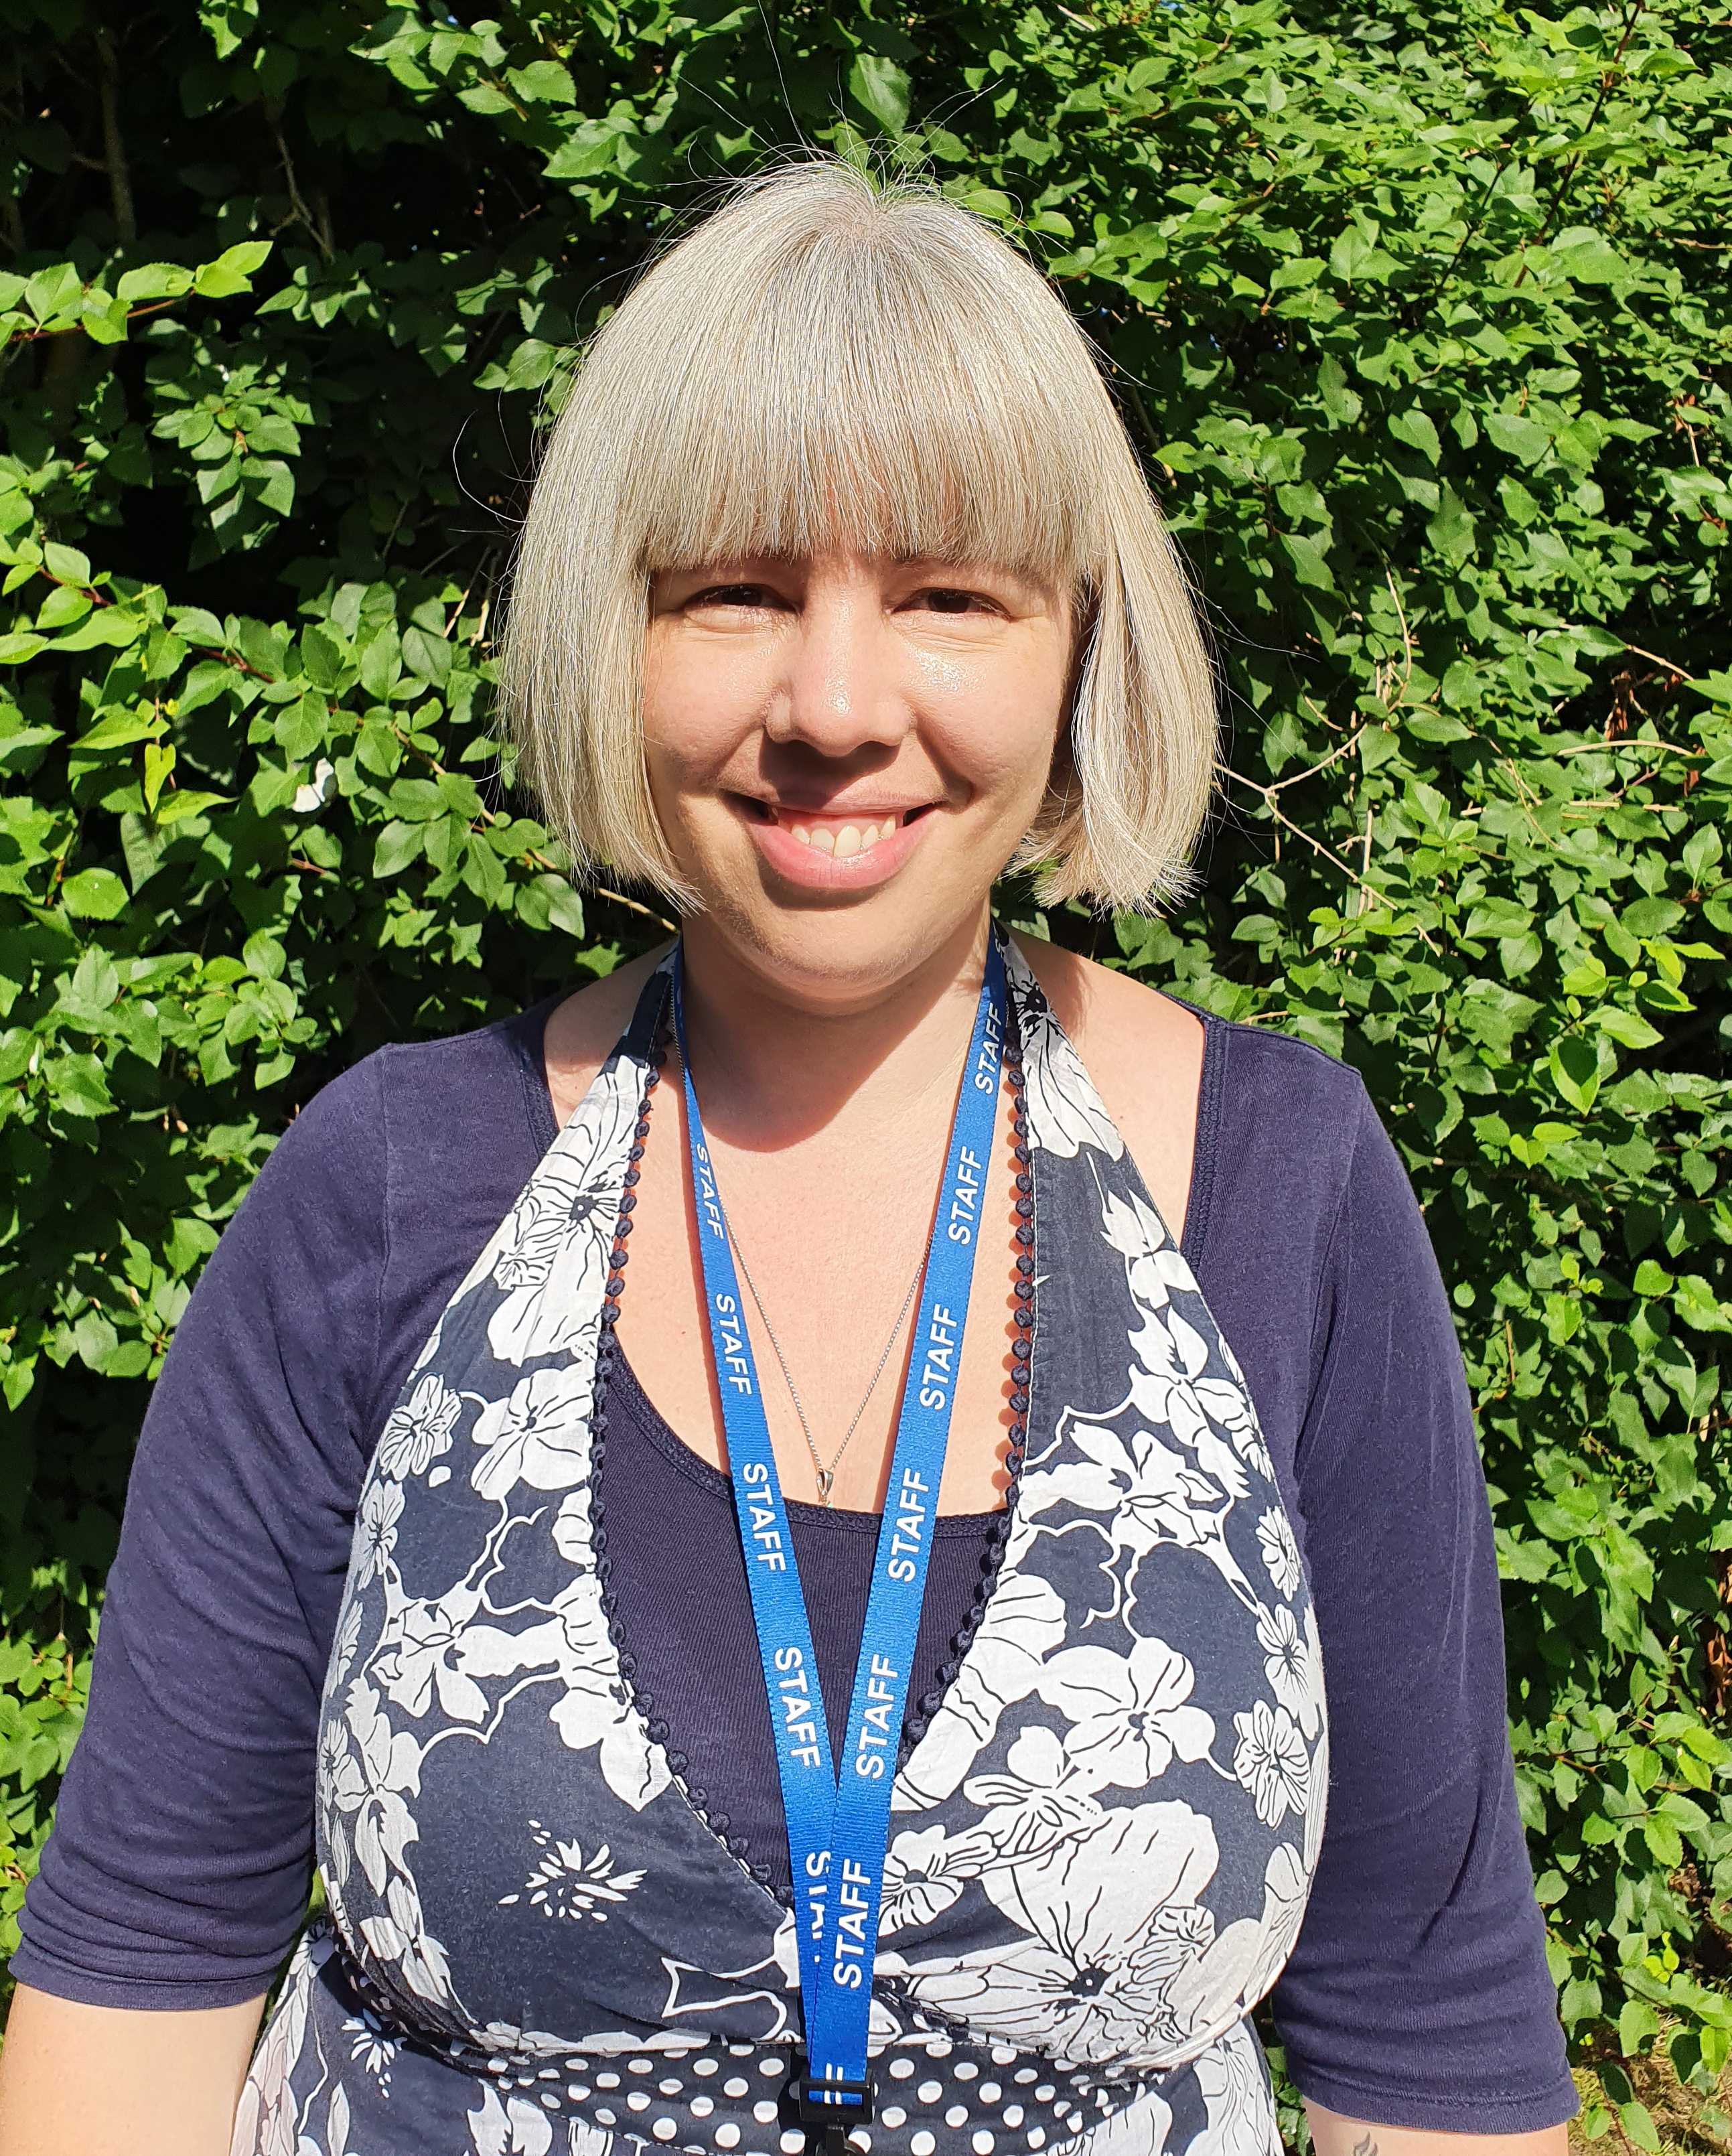 Ruth Martin, Placement Coordinator, Hive College